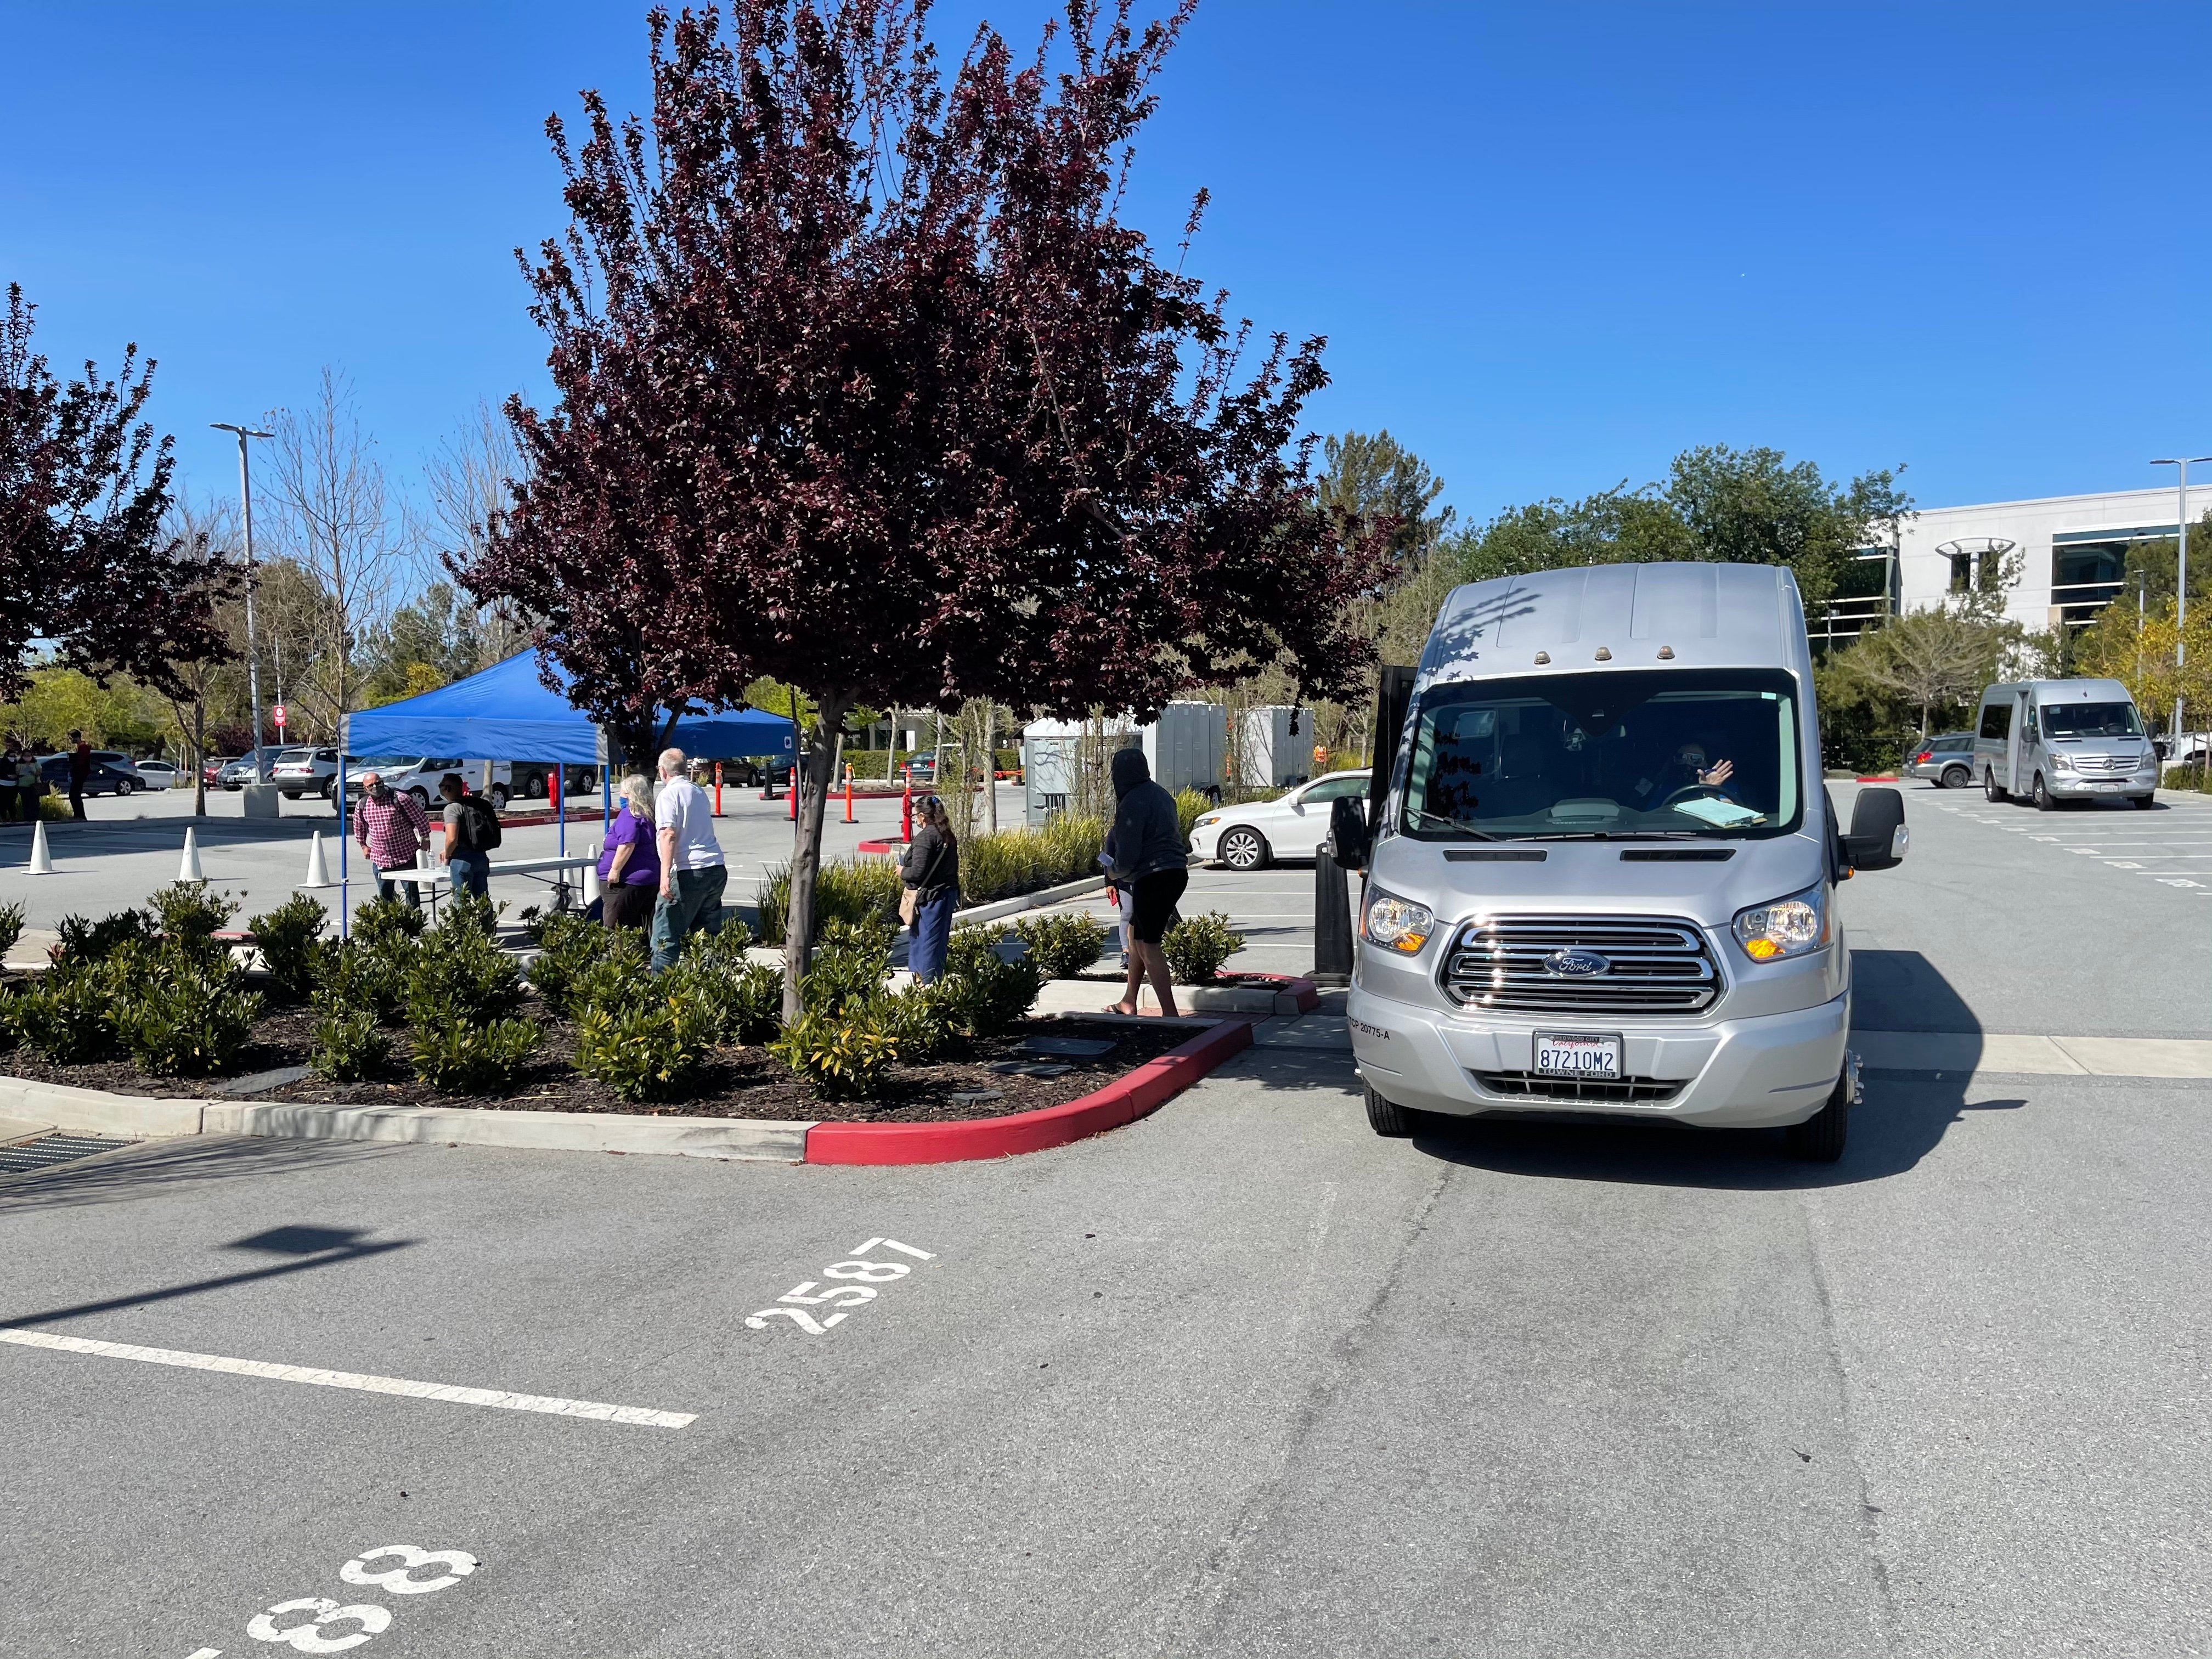 Shuttle in parking lot in front of a tent with a line of people